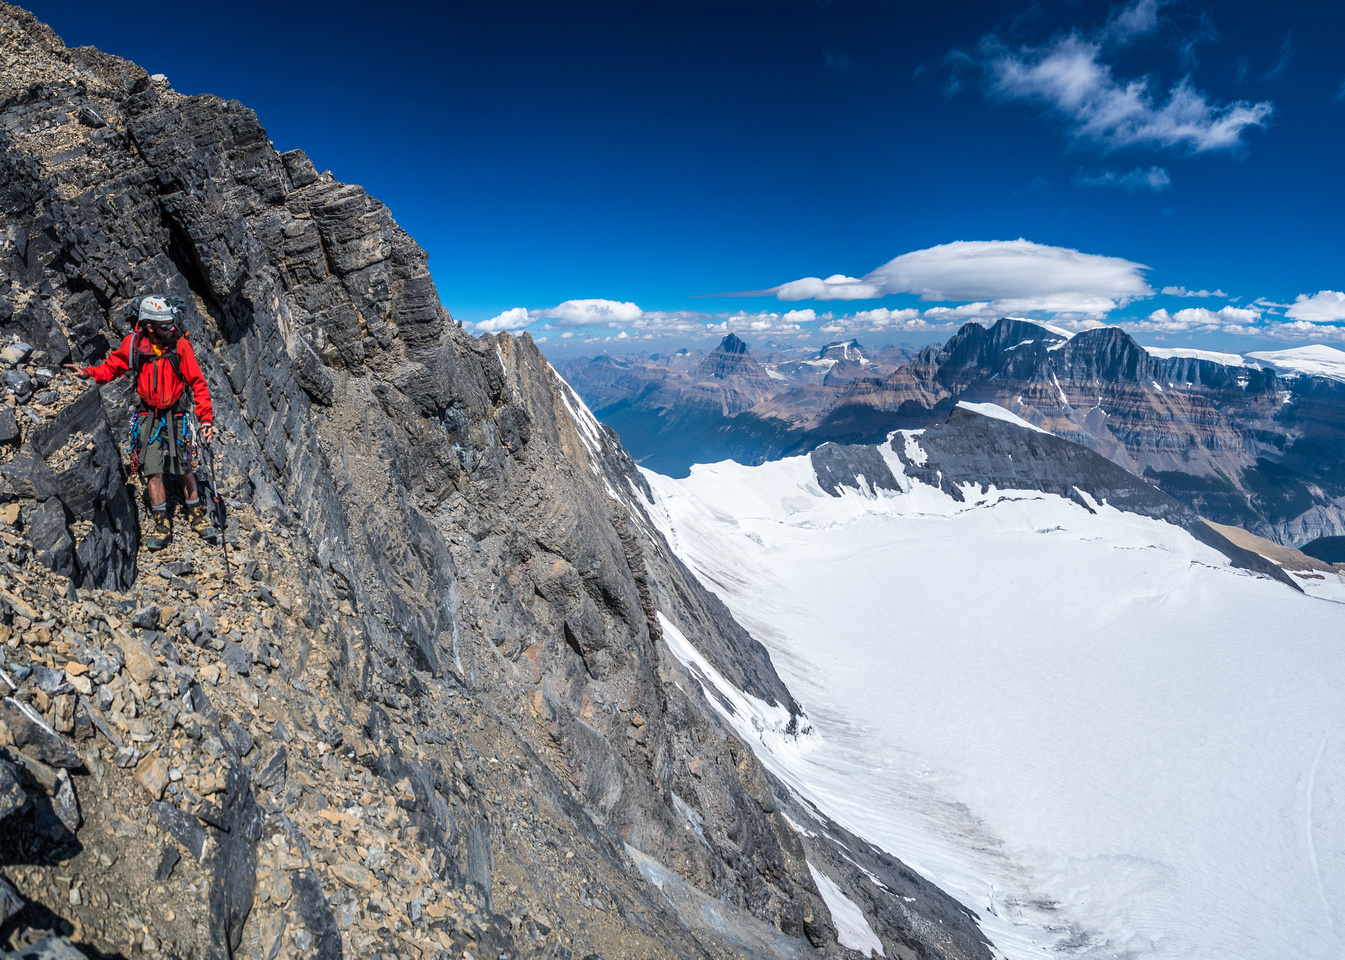 Ben near the top of the east face of the summit block with Mount Alberta, Woolley and the Twins in the distance.